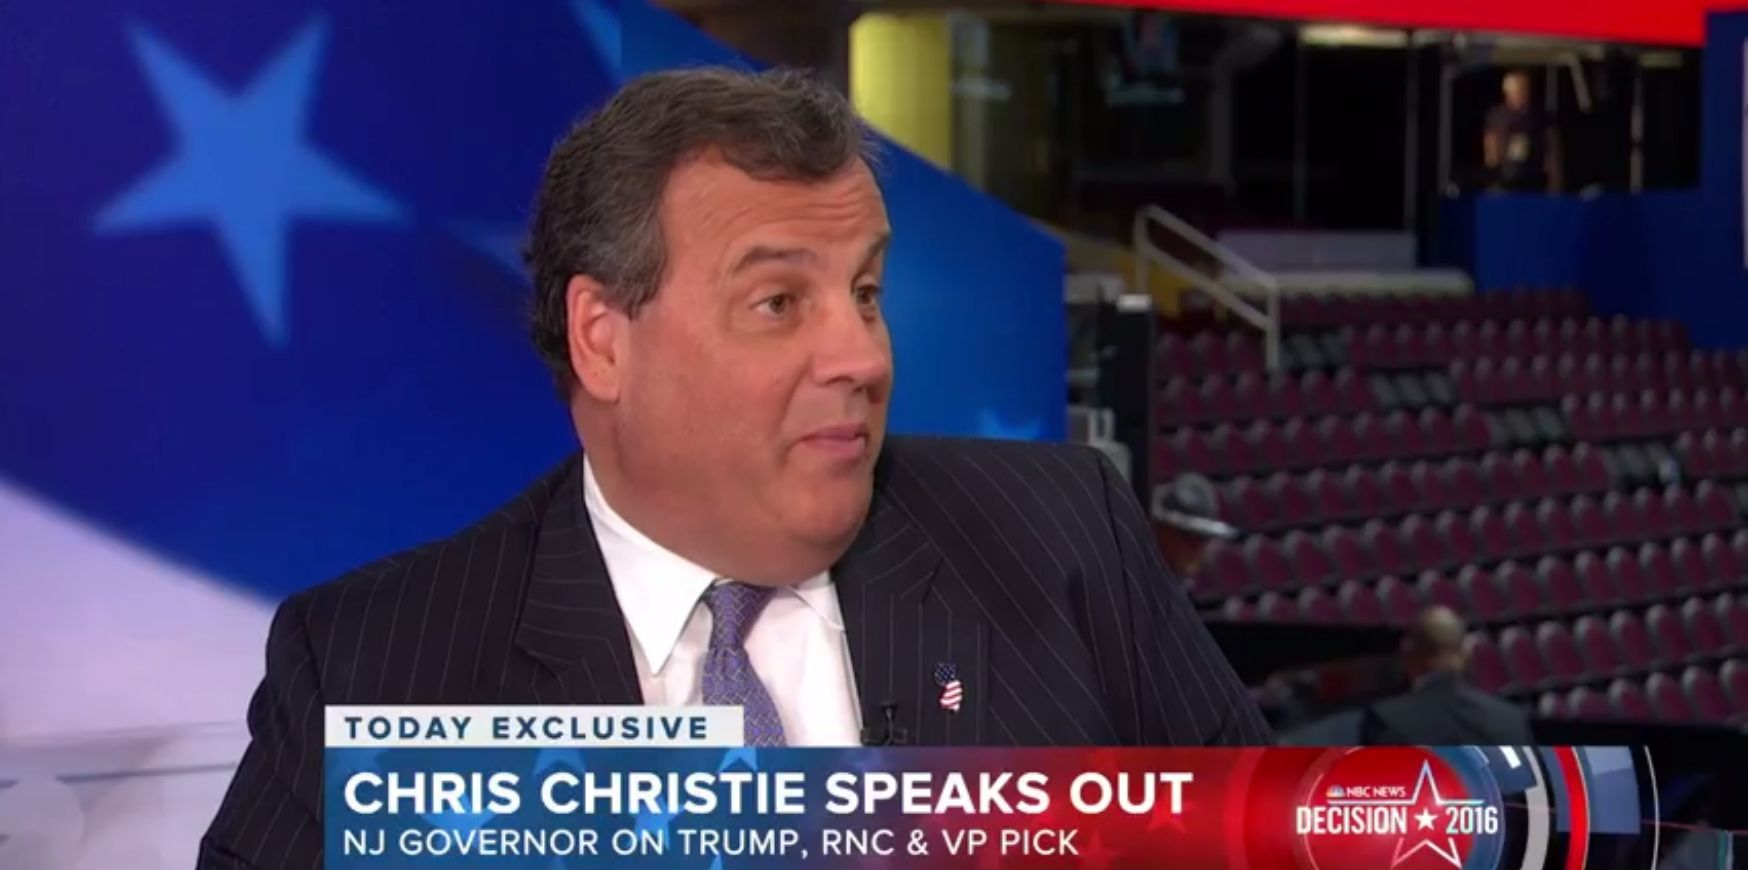 Chris Christie Resume Buy A Speech No Plagiarism Antitesisadalah X Fc2